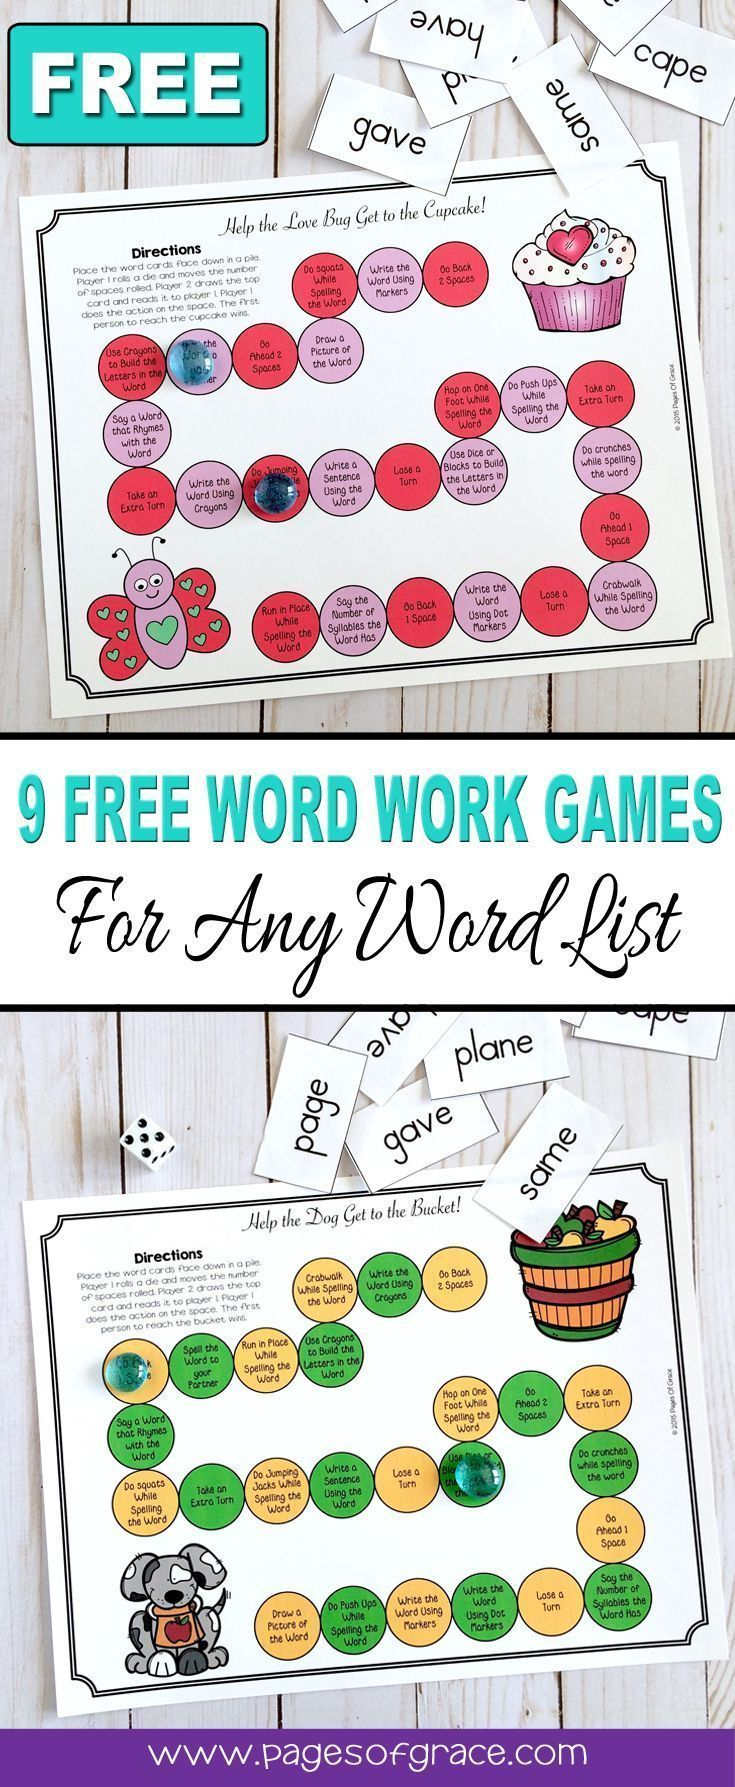 Help your students master any word list and have some holiday and seasonal fun with this set of 9 FREE word work board games! There a 9 games board, themed for each month of the school year-Back to school, Halloween, Thanksgiving, Christmas, Winter, Valentine's Day, St. Patrick's Day, Easter, Spring, Can be used with any word list-phonics, sight words, spelling words. Great for kindergarten, first grade, second grade, third grade. Fun activity for literacy centers! #mathgamesforsecondgrade